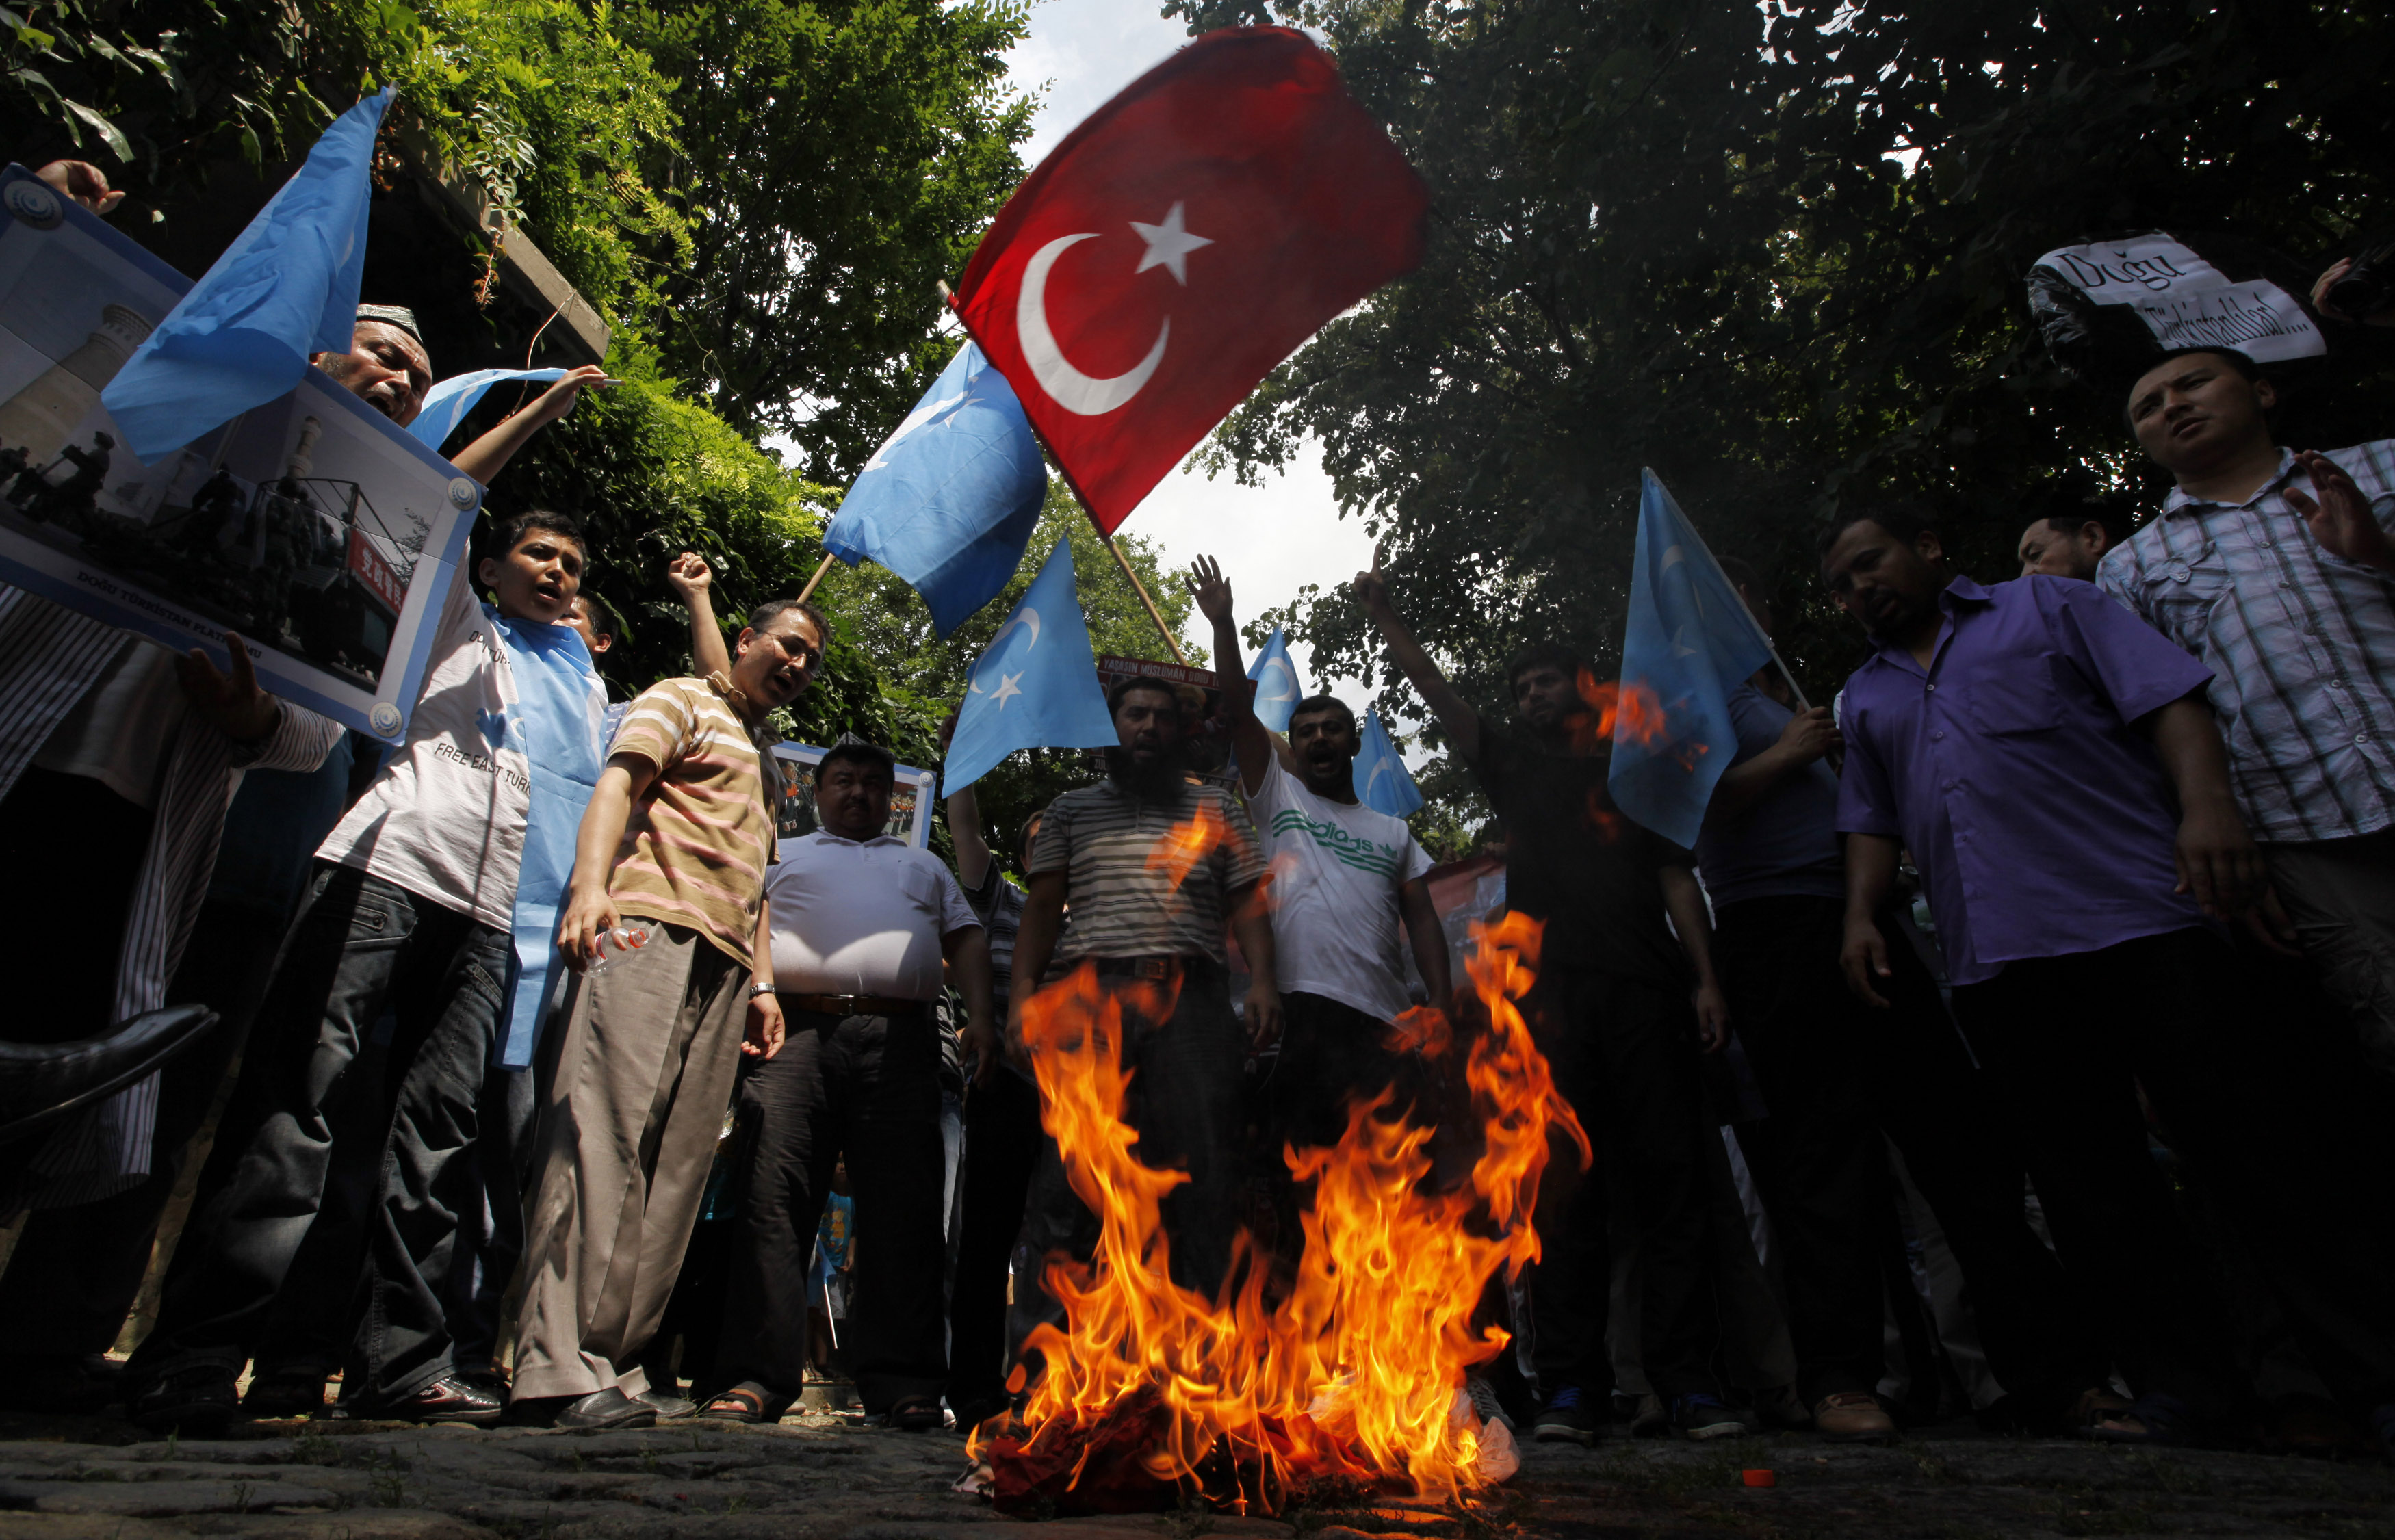 """Ethnic Uighur demonstrators, waving Turkish and blue East Turkestan flags, set fire to a Chinese flag during a protest against China near the Chinese Consulate in Istanbul July 21, 2011. China on Wednesday raised the death toll to 18 from a clash at a police station in the restive far western region of Xinjiang, saying that 14 """"rioters"""" died along with two policemen and two hostages in the worst violence there in a year. Government officials previously said at least four people were killed in what they described as a terrorist attack. But the Germany-based exile group World Uyghur Congress said it was an attack on unarmed protesters."""